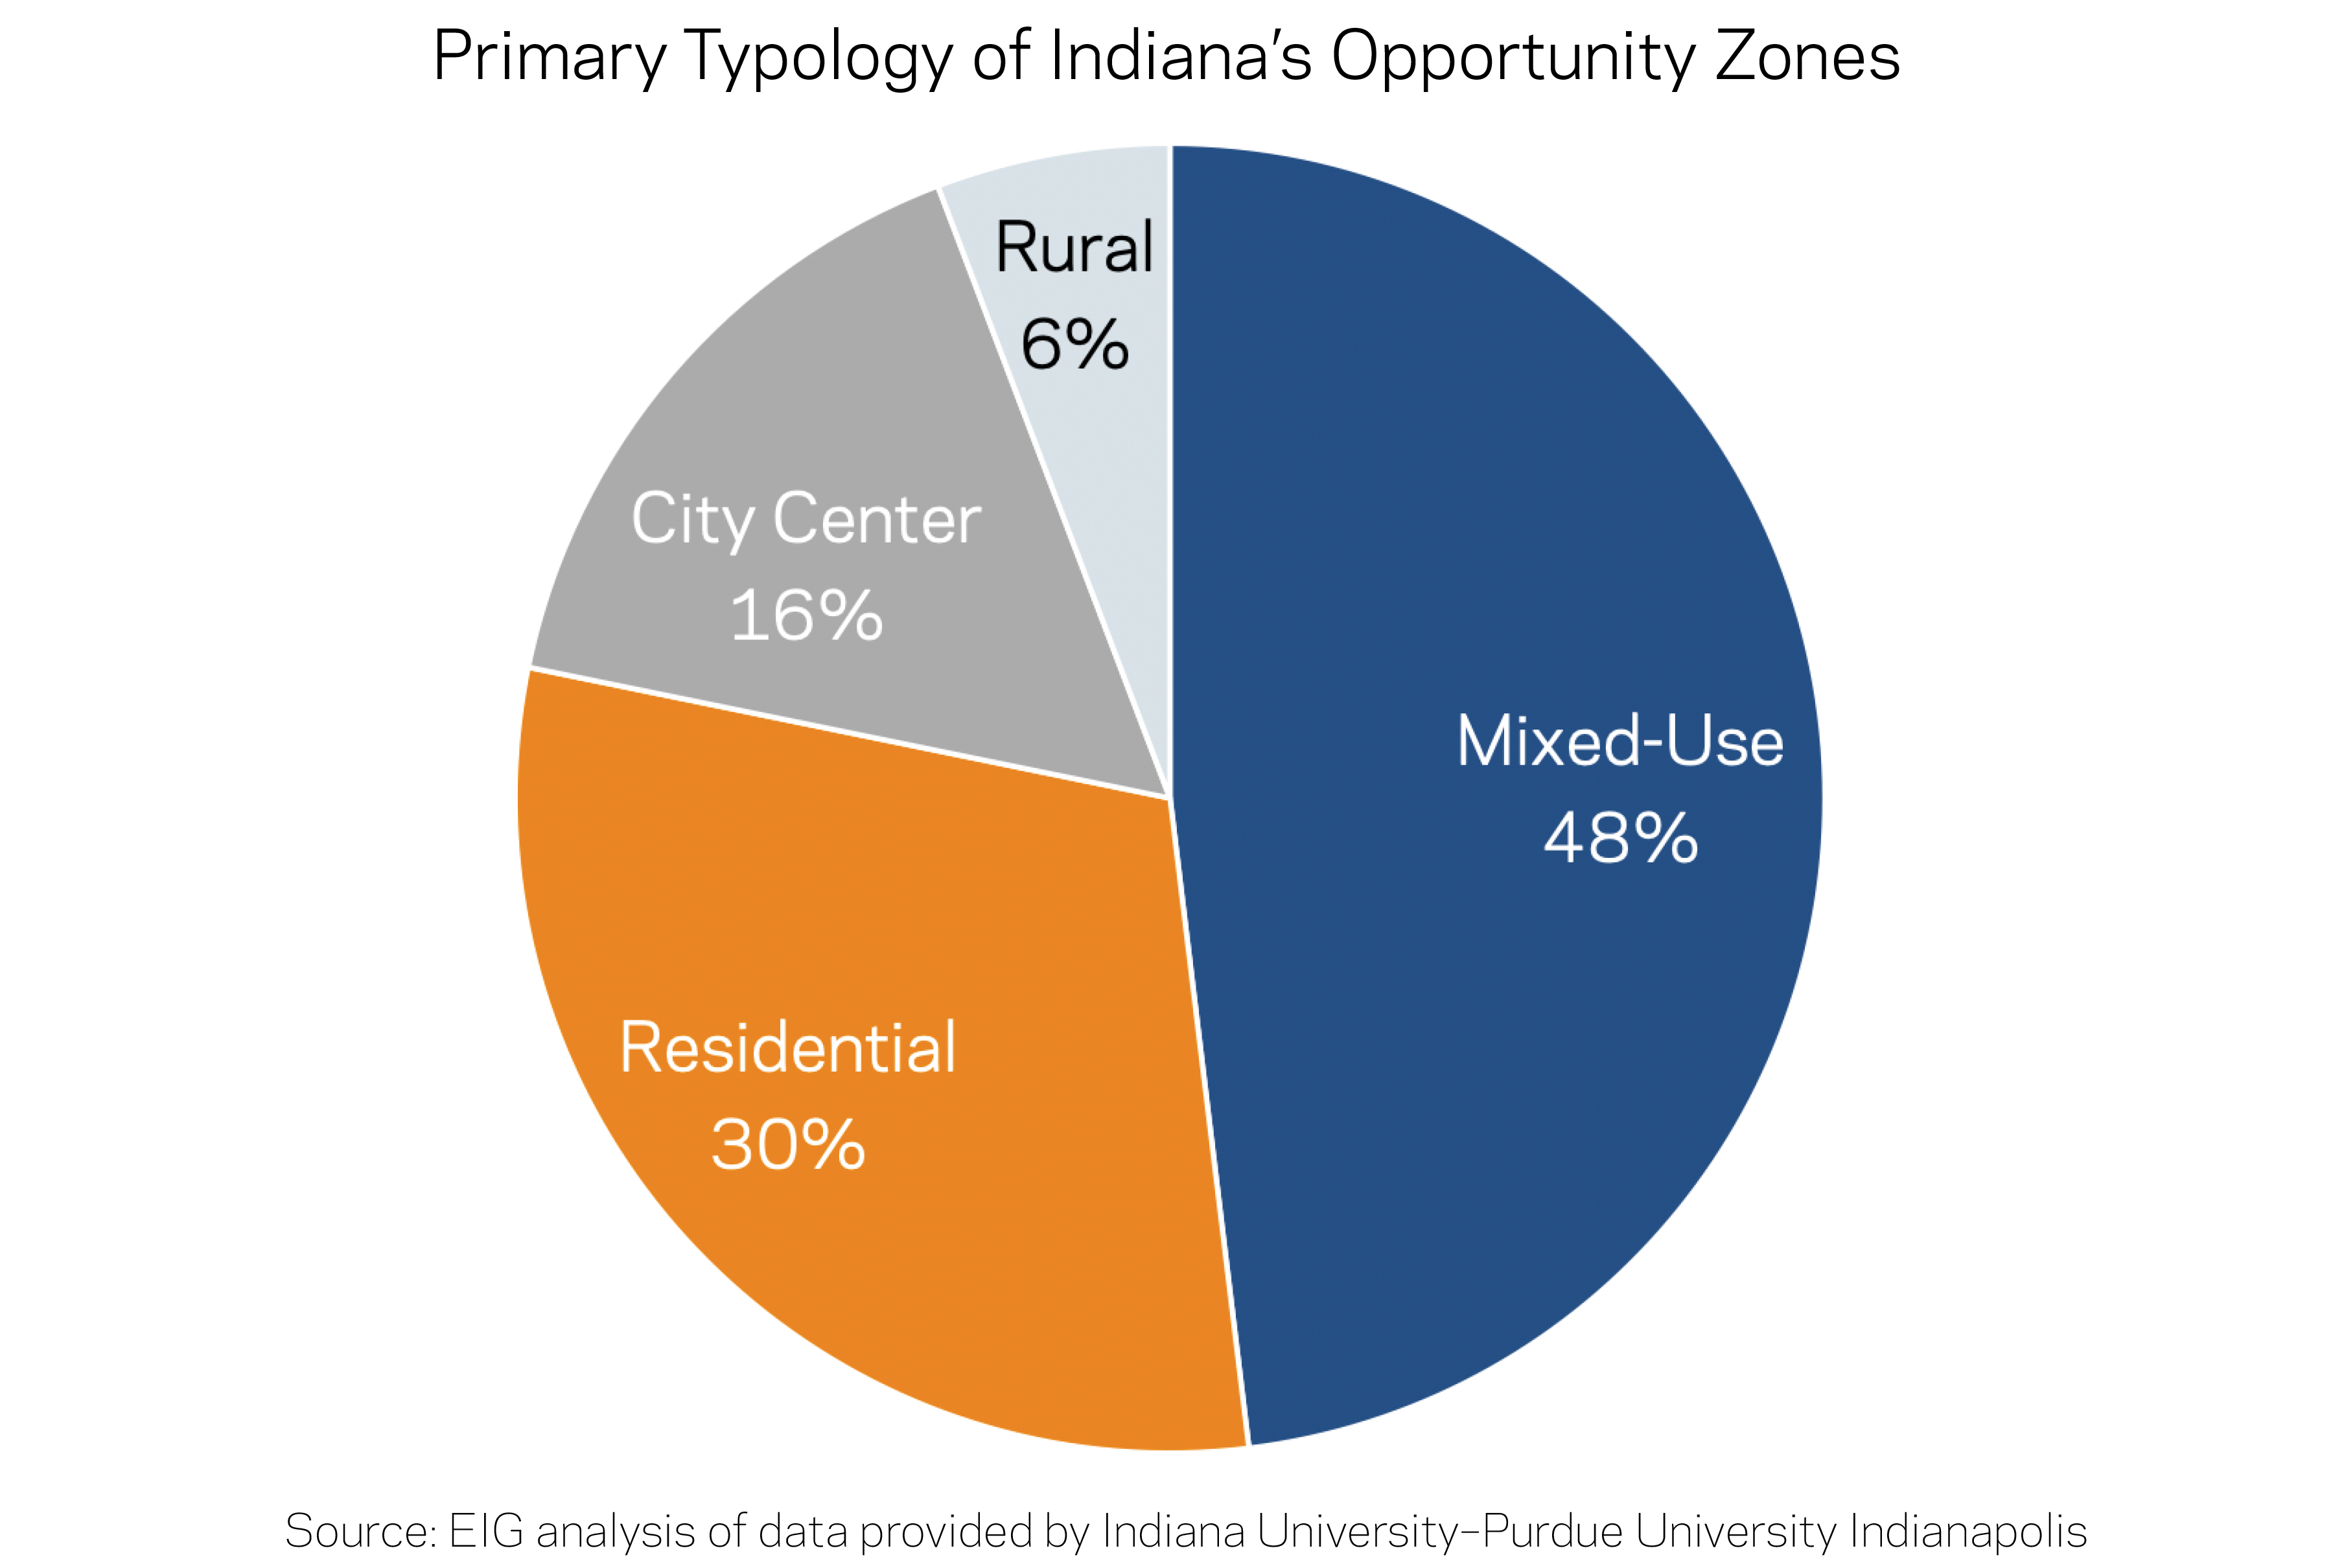 Primary Typology of Indiana's Opportunity Zones